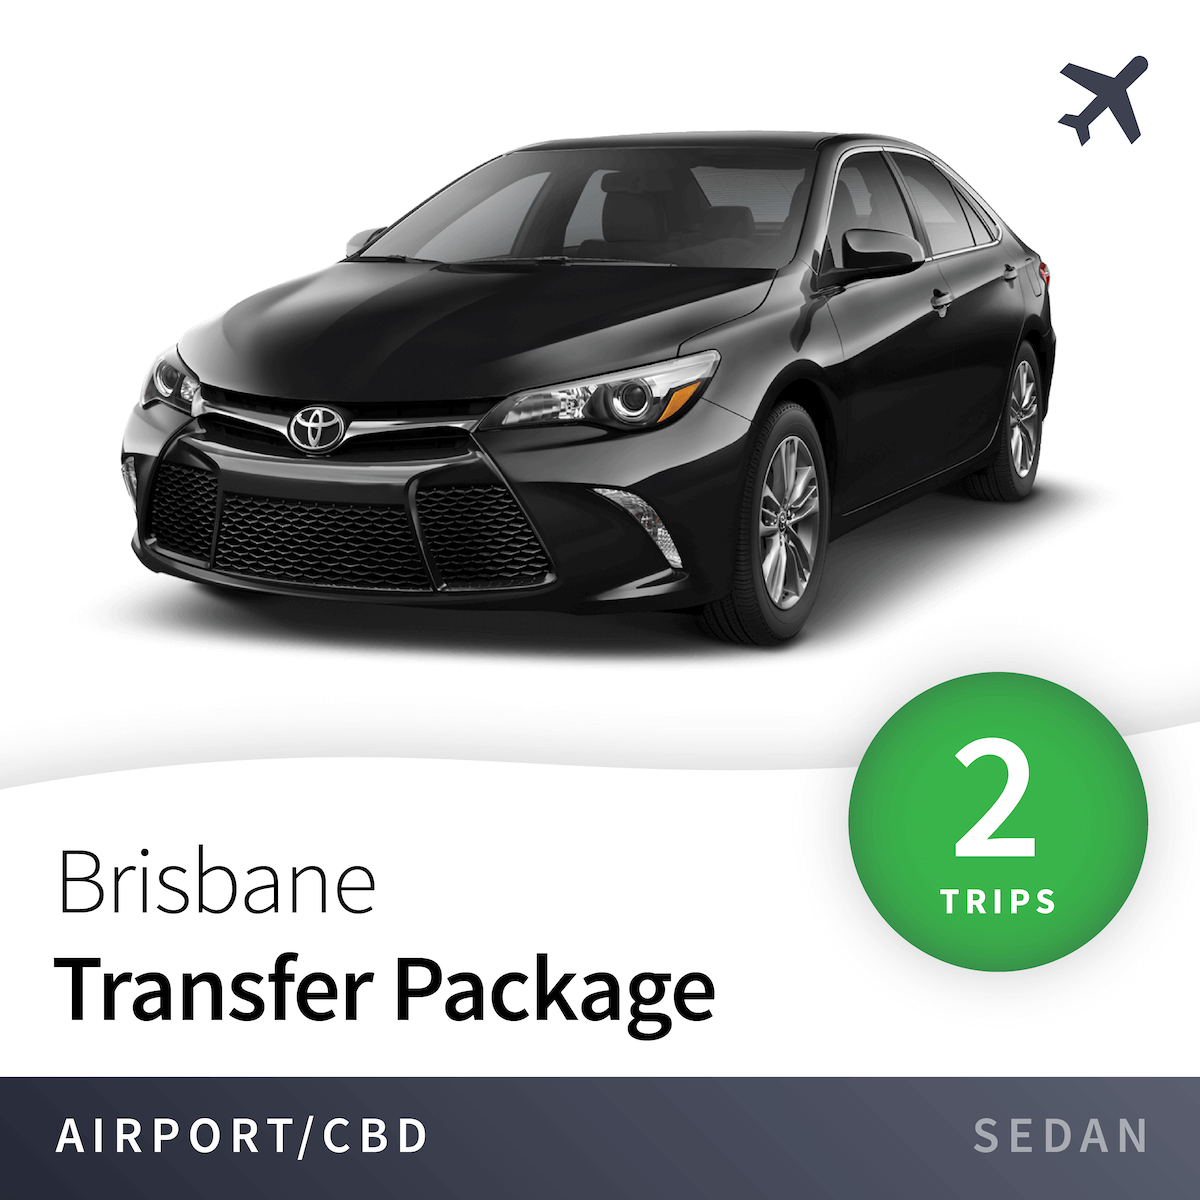 Brisbane Airport Transfer Package - Sedan (2 Trips) 11